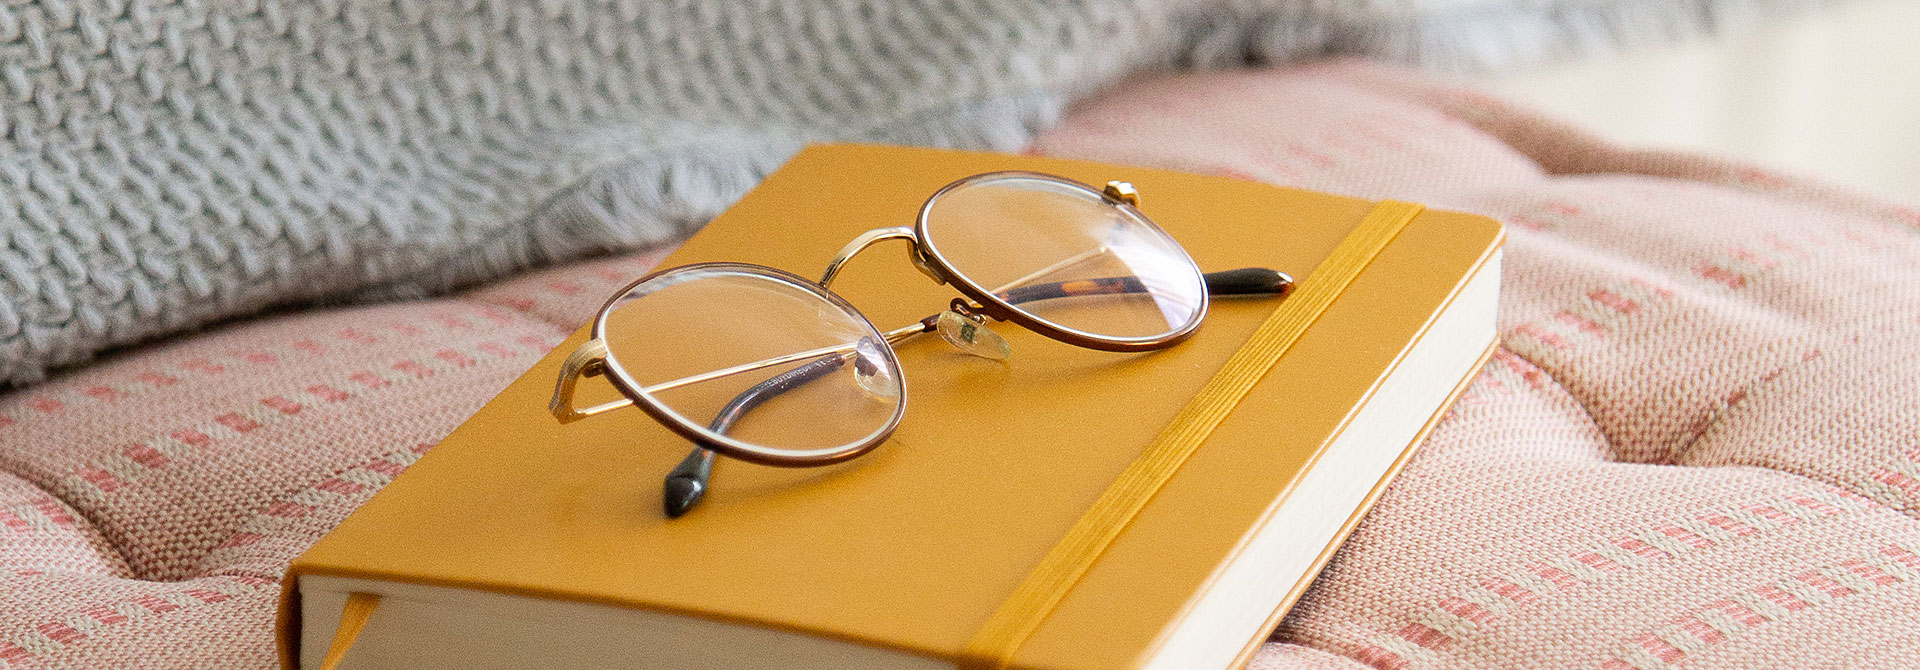 close up image of glasses on top of a book